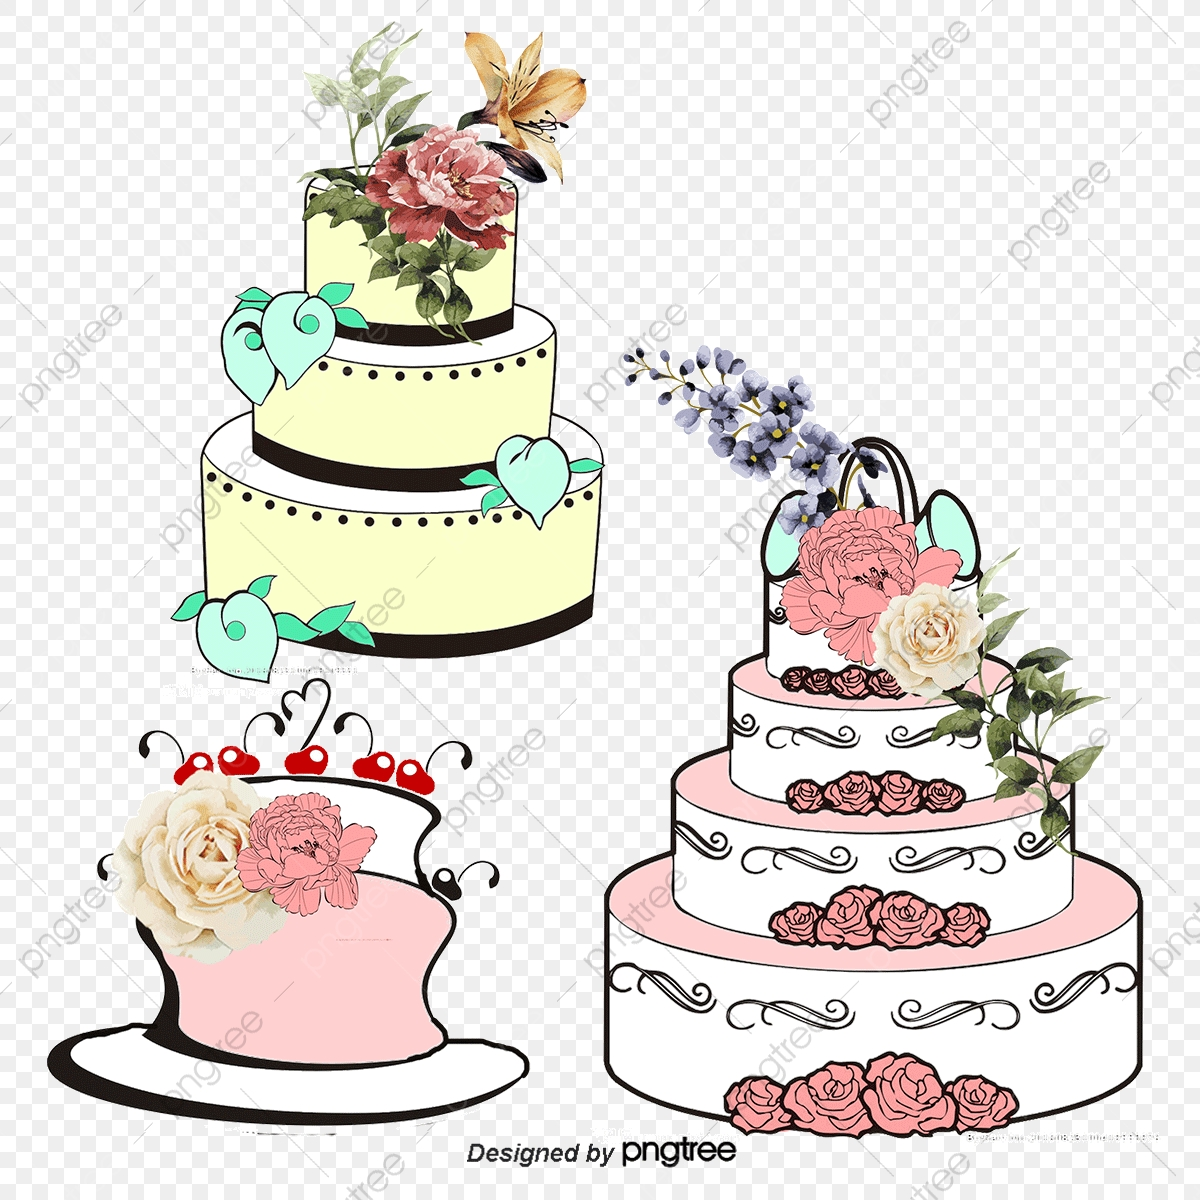 Wedding Cake Png Vector Psd And Clipart With Transparent Background For Free Download Pngtree